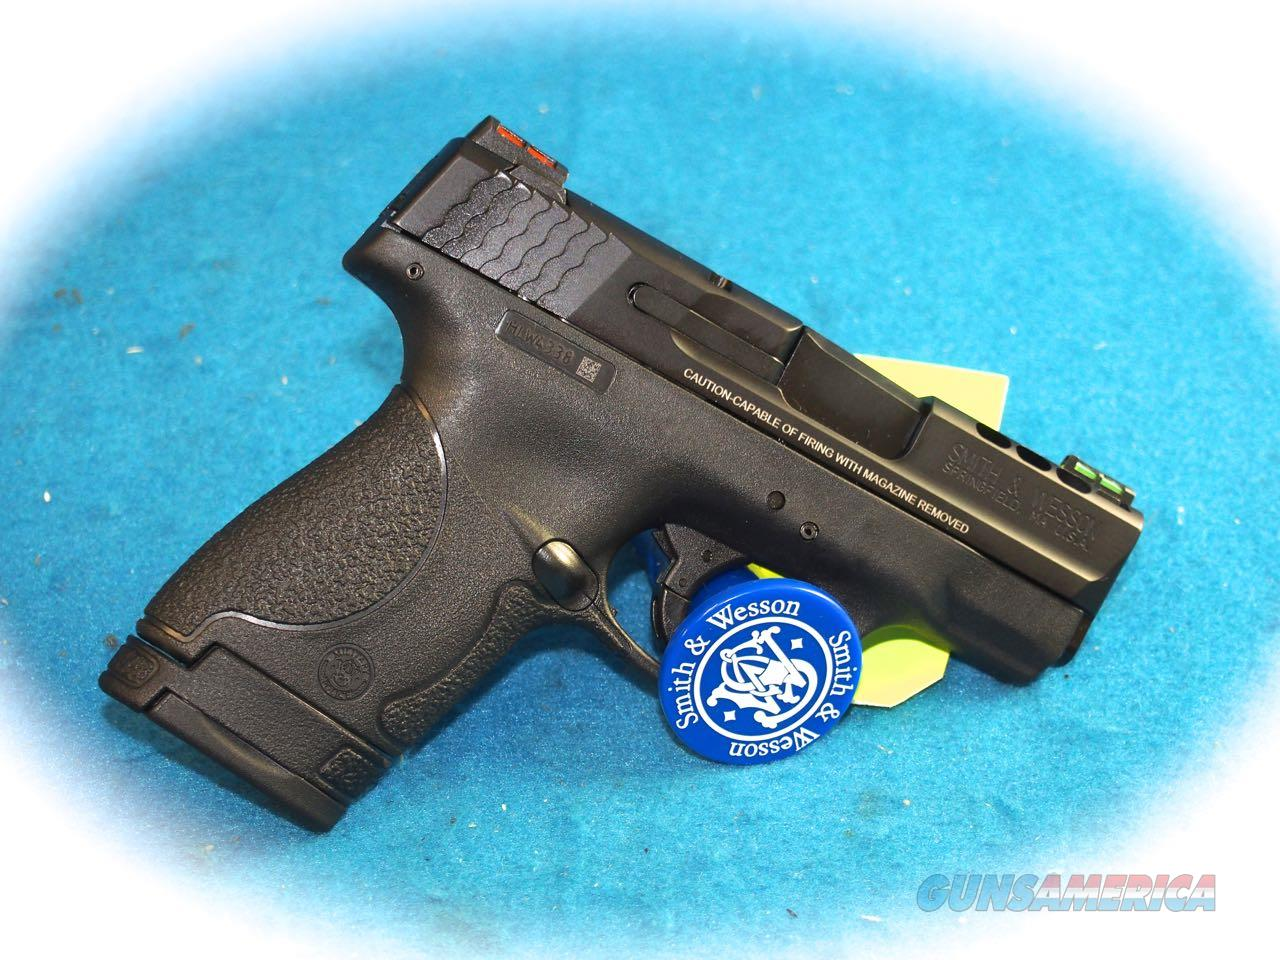 Smith & Wesson M&P Shield 9mm Ported BBL Performance Ctr **New**  Guns > Pistols > Smith & Wesson Pistols - Autos > Shield